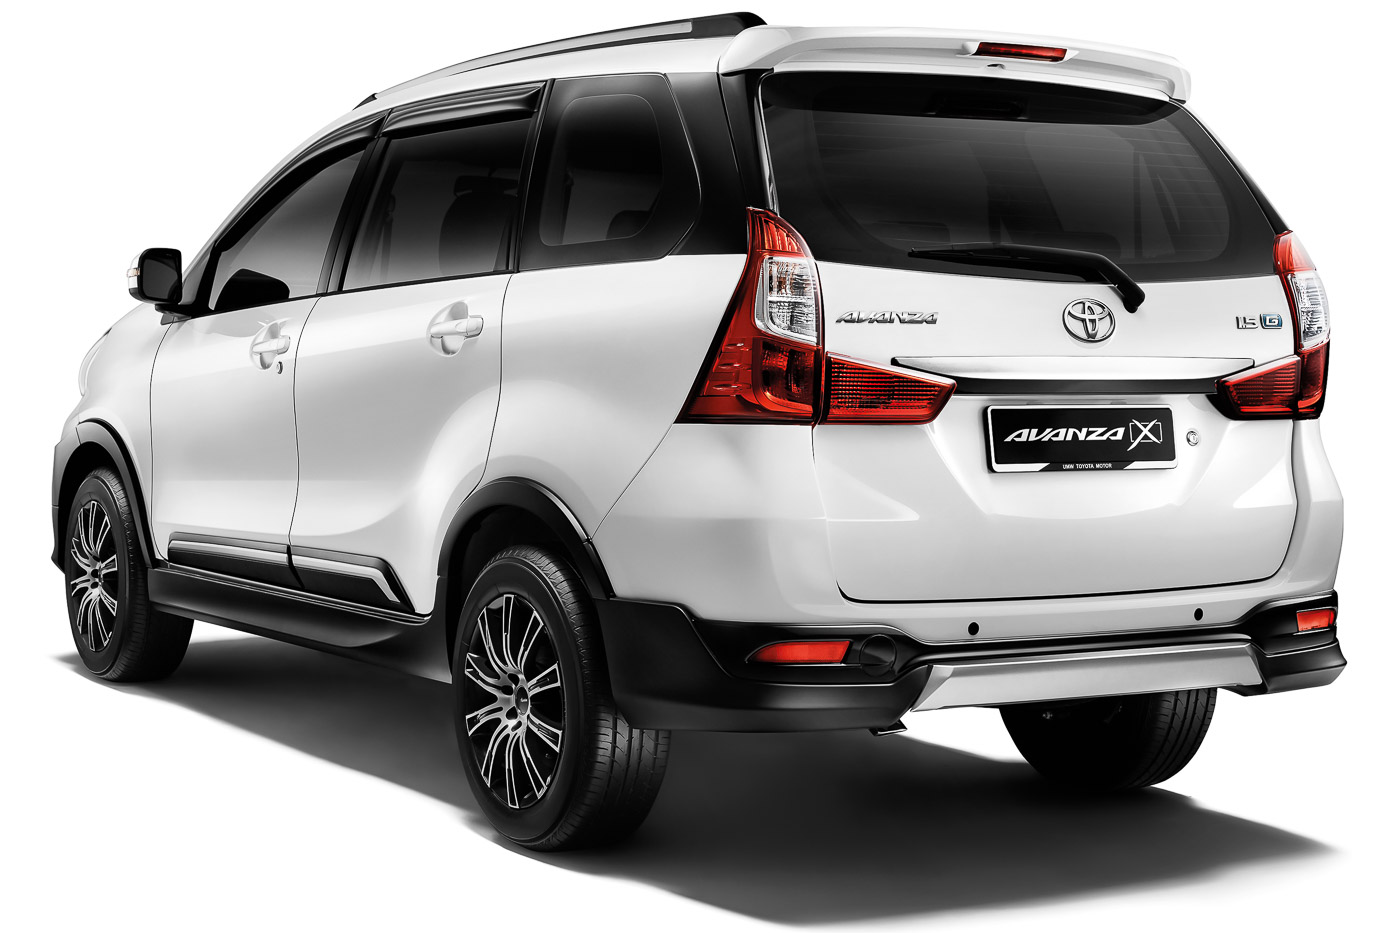 foto grand new avanza 1.3 e std a/t toyota 1 5x introduced in malaysia rugged looks